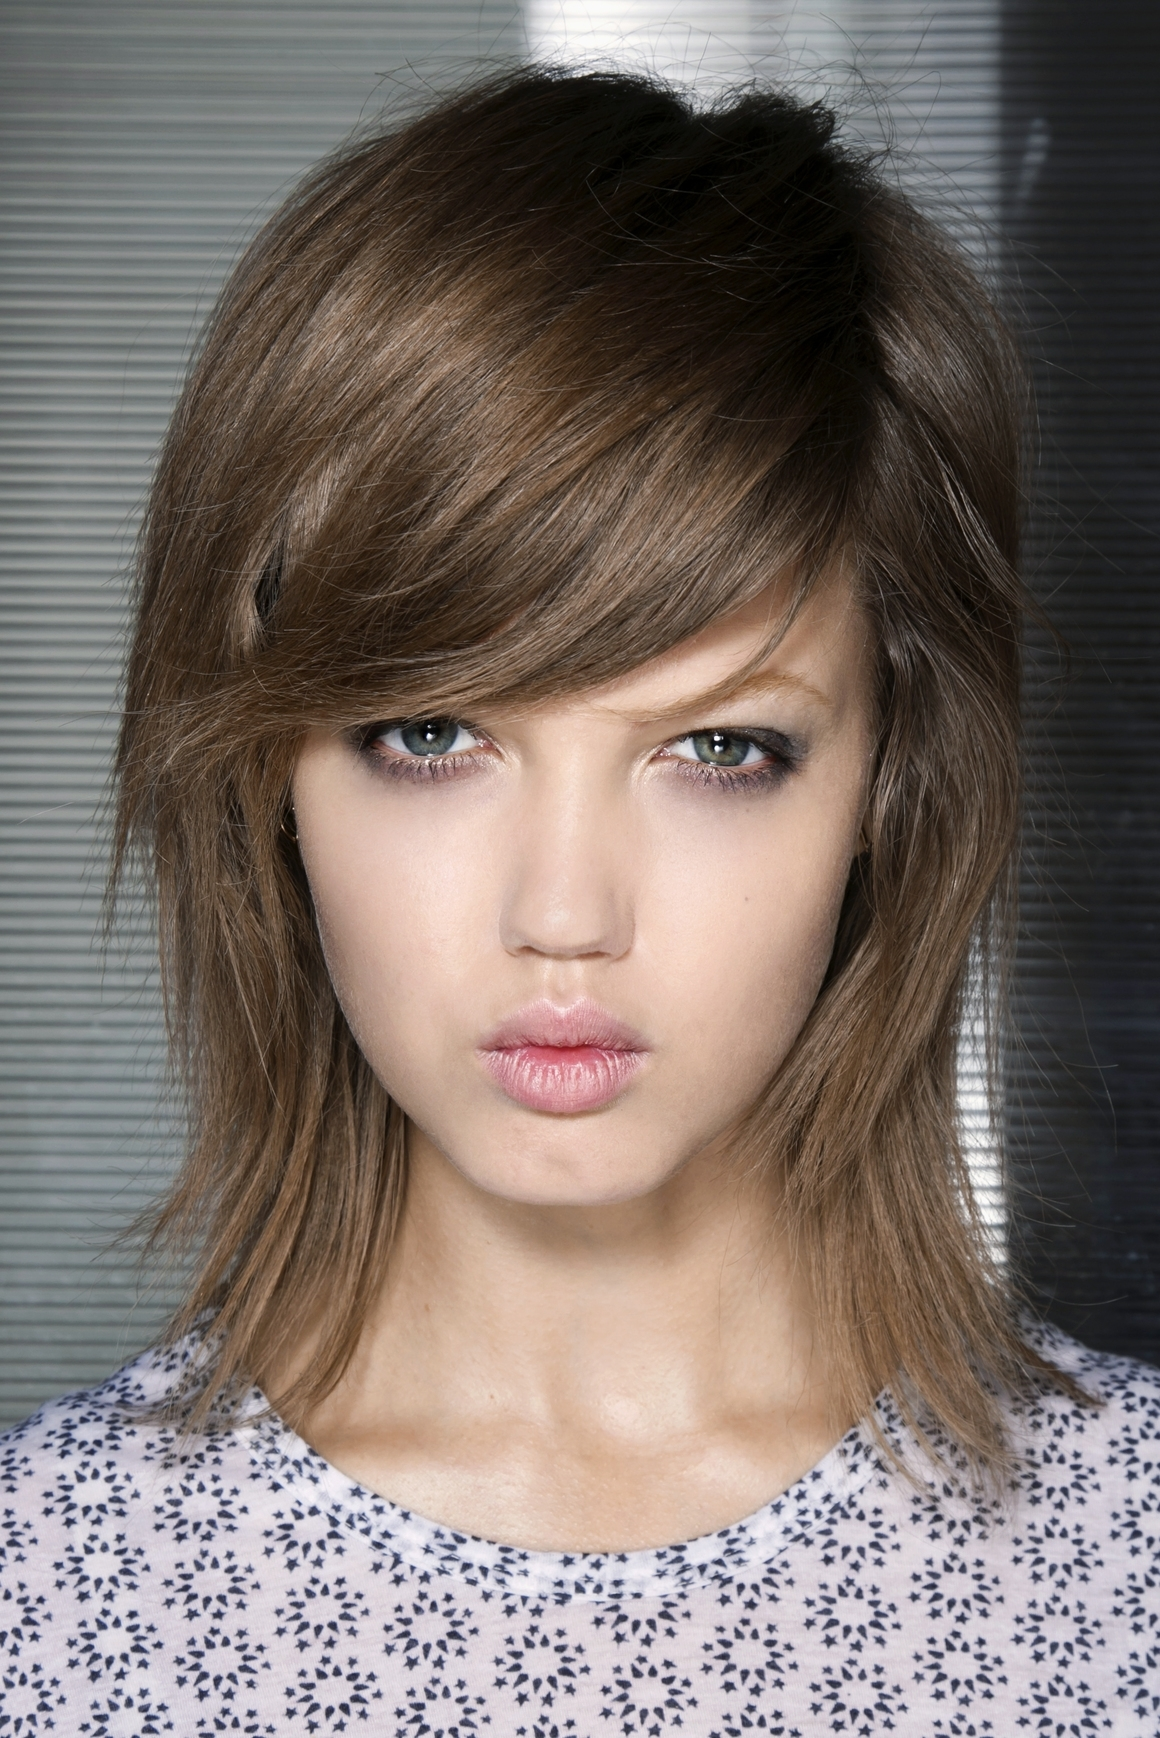 50 Coolest Cuts For 2015 | Shag Hairstyles, Side Sweep Bangs And Regarding 2018 Pixie Hairstyles With Long Side Swept Bangs (View 10 of 15)